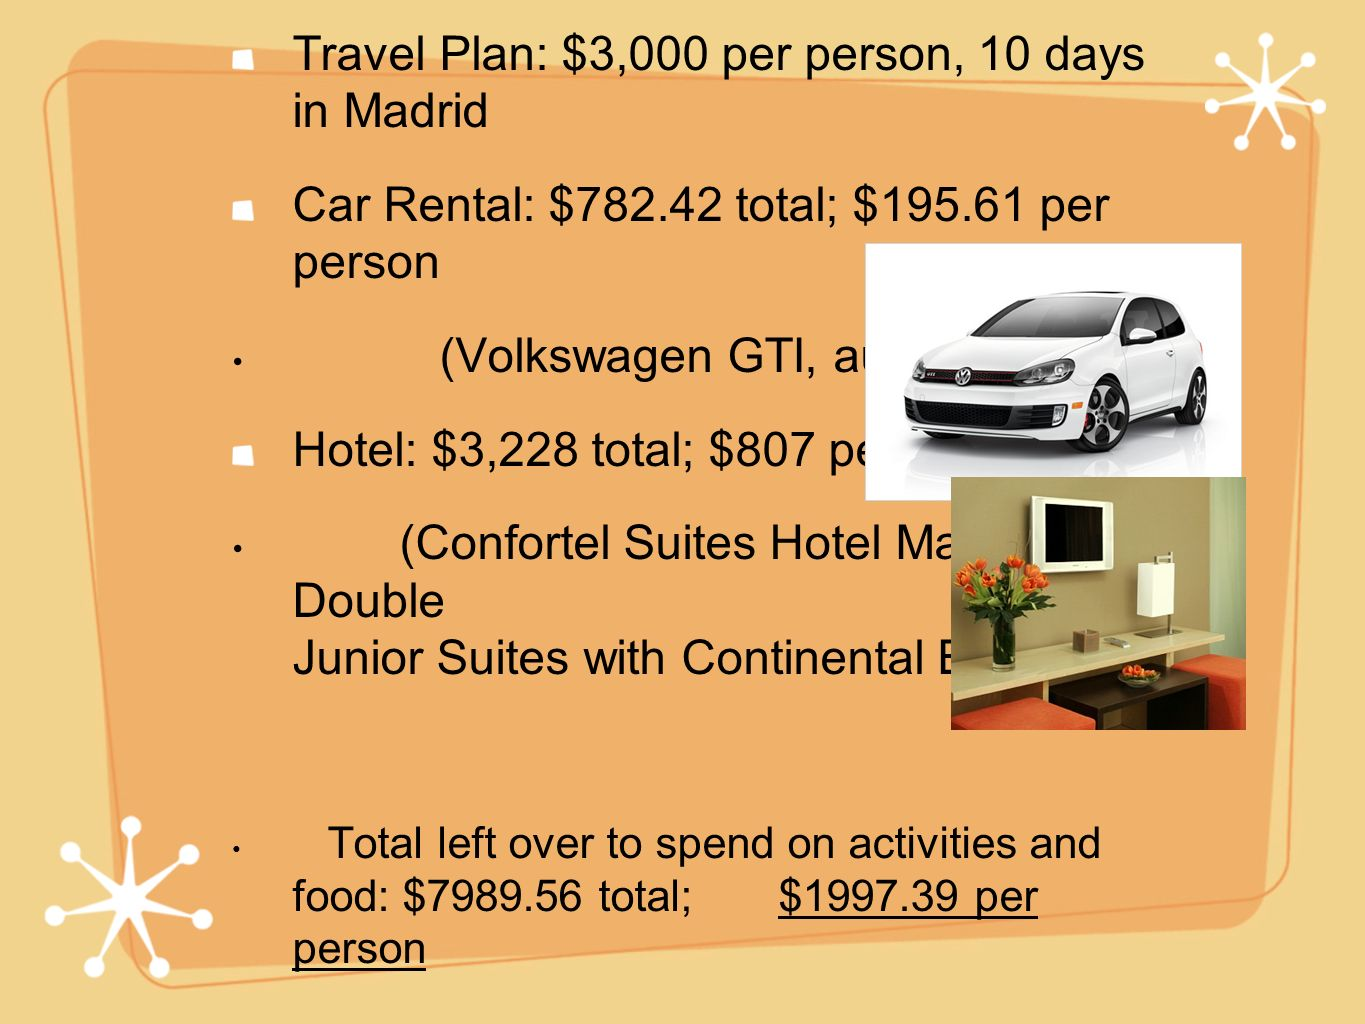 Travel Plan: $3,000 per person, 10 days in Madrid Car Rental: $782.42 total; $195.61 per person (Volkswagen GTI, automatic) Hotel: $3,228 total; $807 per person (Confortel Suites Hotel Madrid, two Double Junior Suites with Continental Breakfast) Total left over to spend on activities and food: $7989.56 total; $1997.39 per person